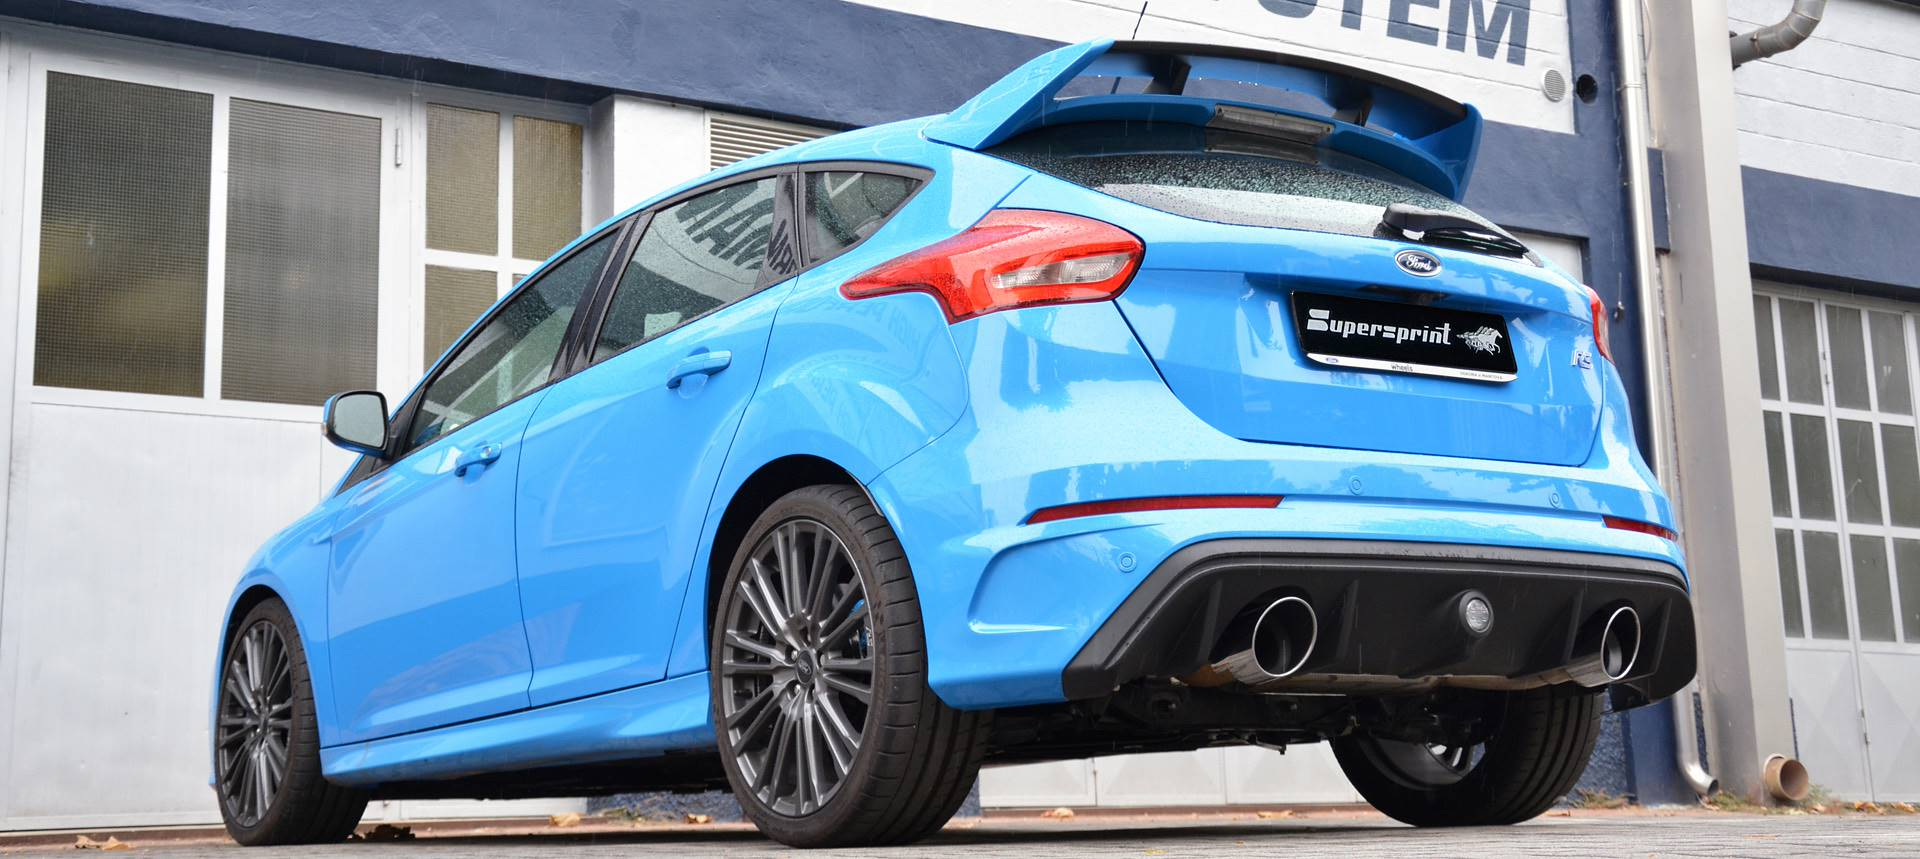 FORD FOCUS RS 2.3i Turbo 4x4 (350 Hp) sound with Supersprint full exhaust system with valve